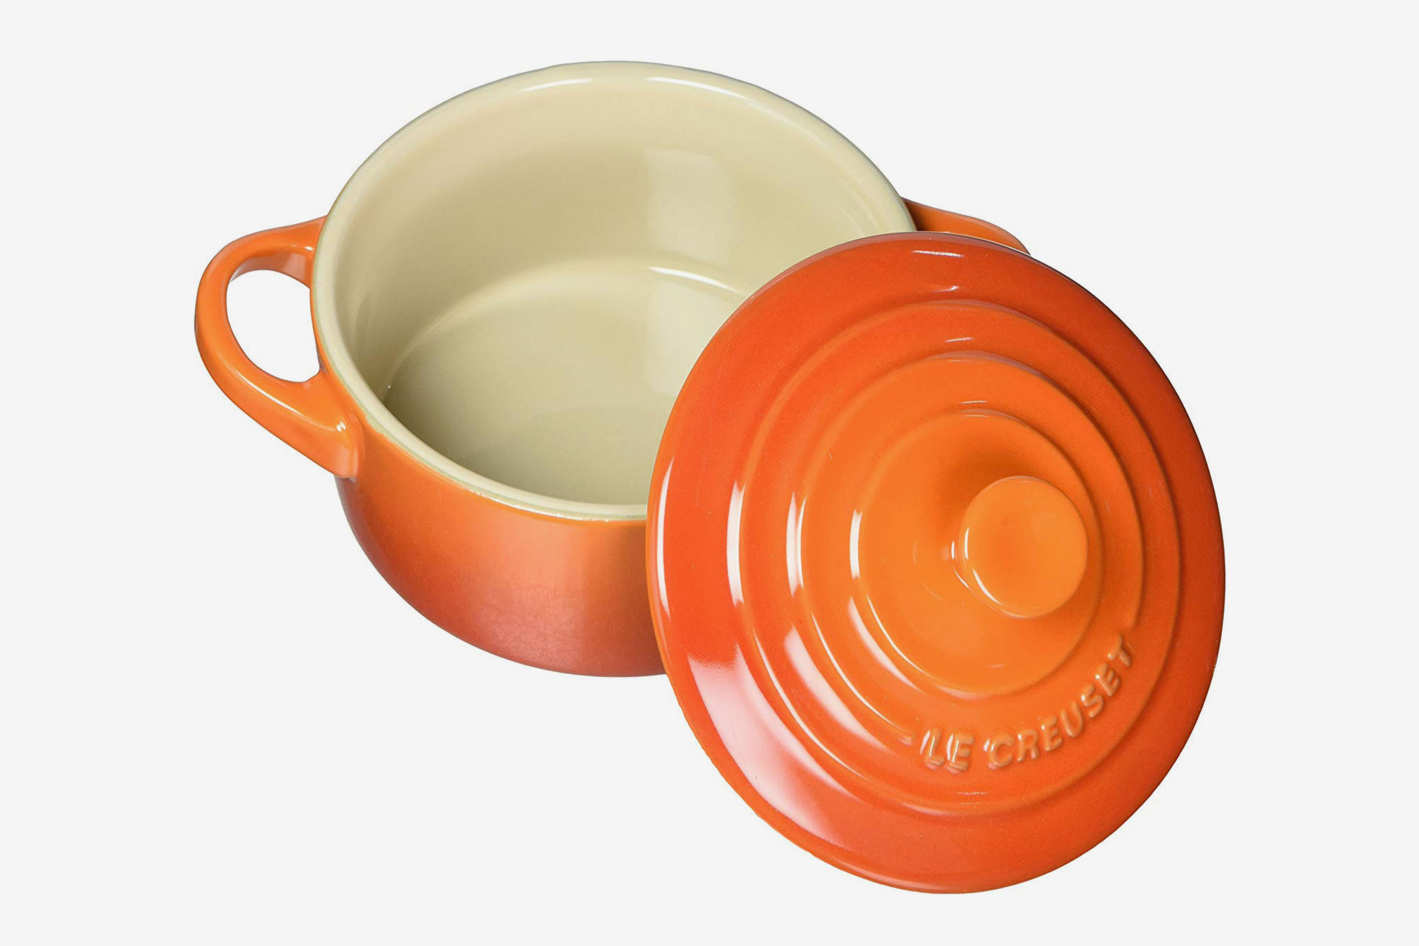 Le Creuset Set of 4 Mini Cocottes